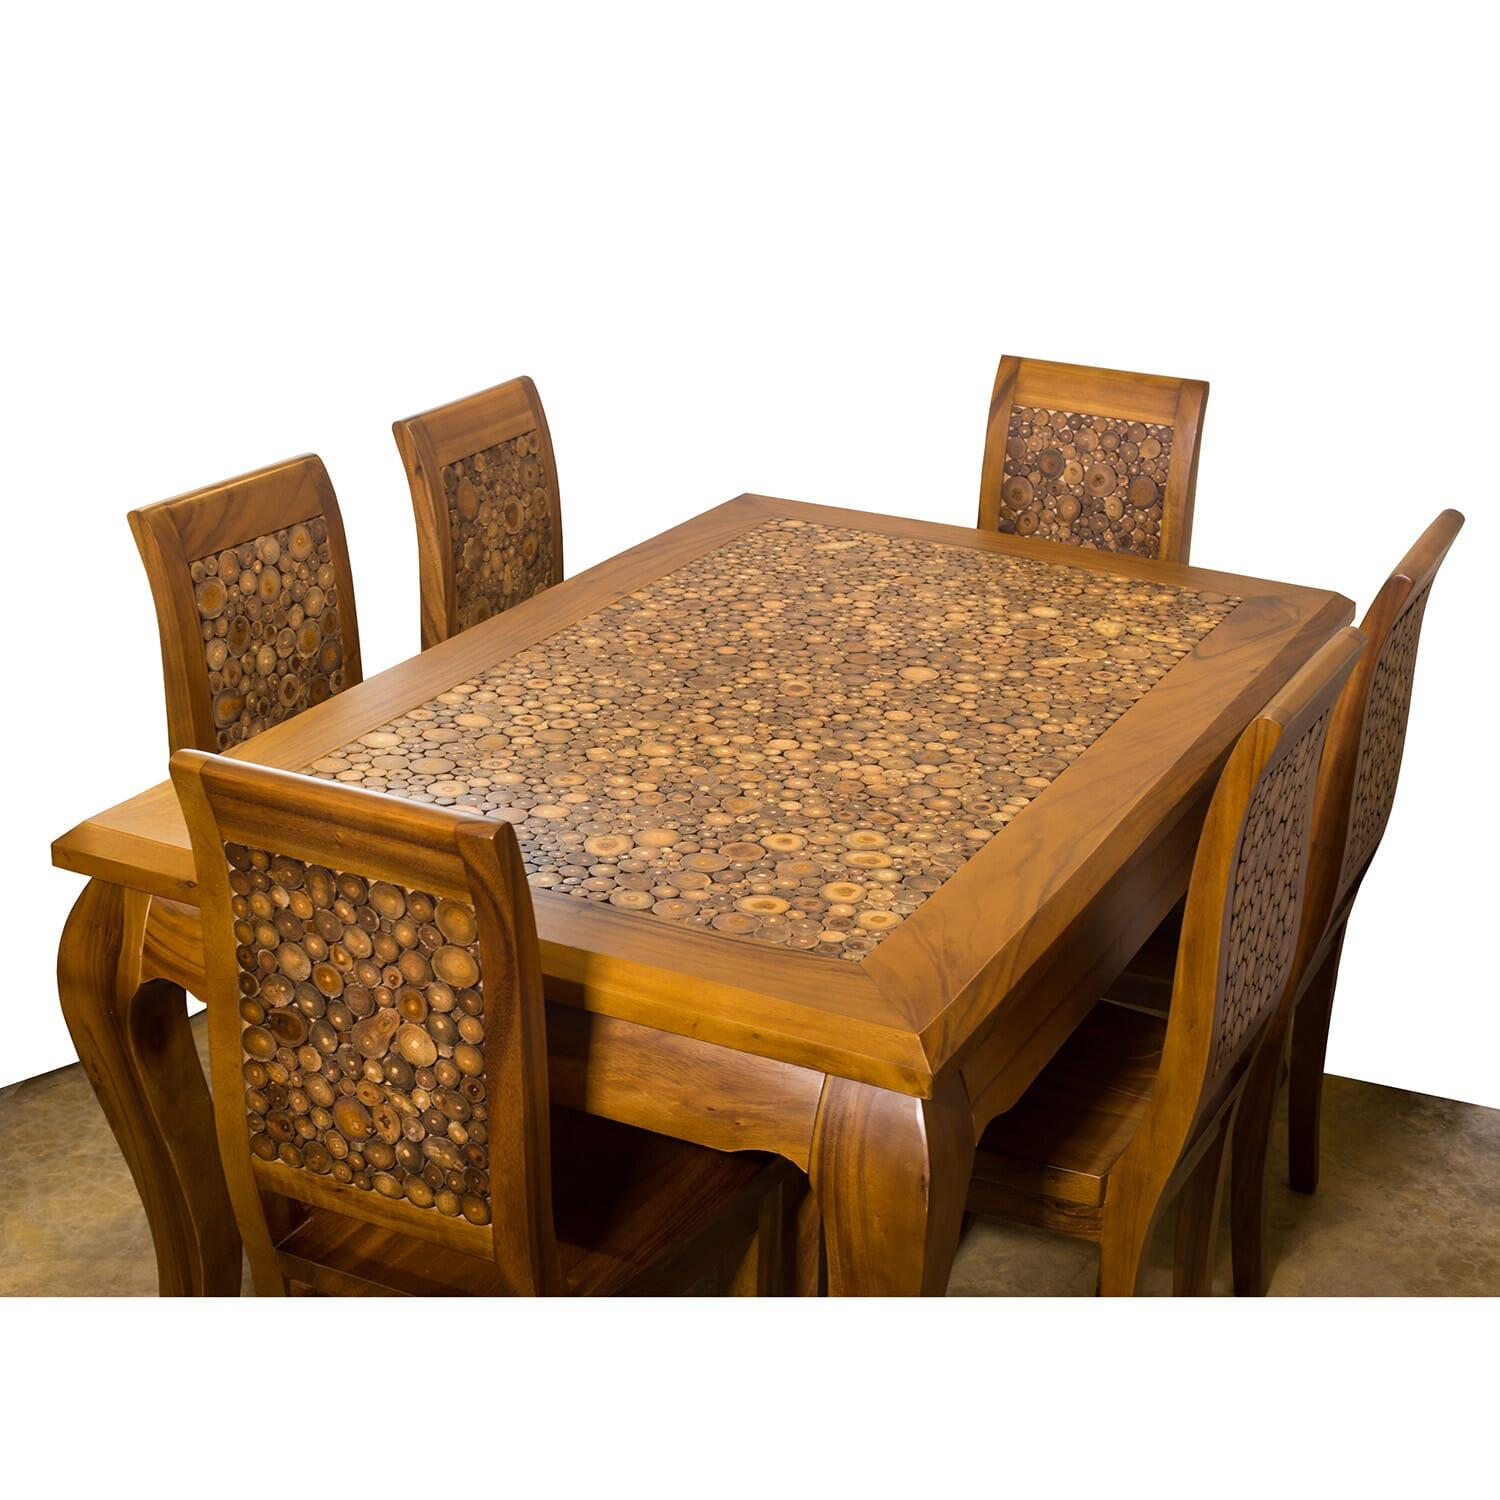 Buy Teak Furniture At Best Prices Online In Sri Lanka Daraz Lk